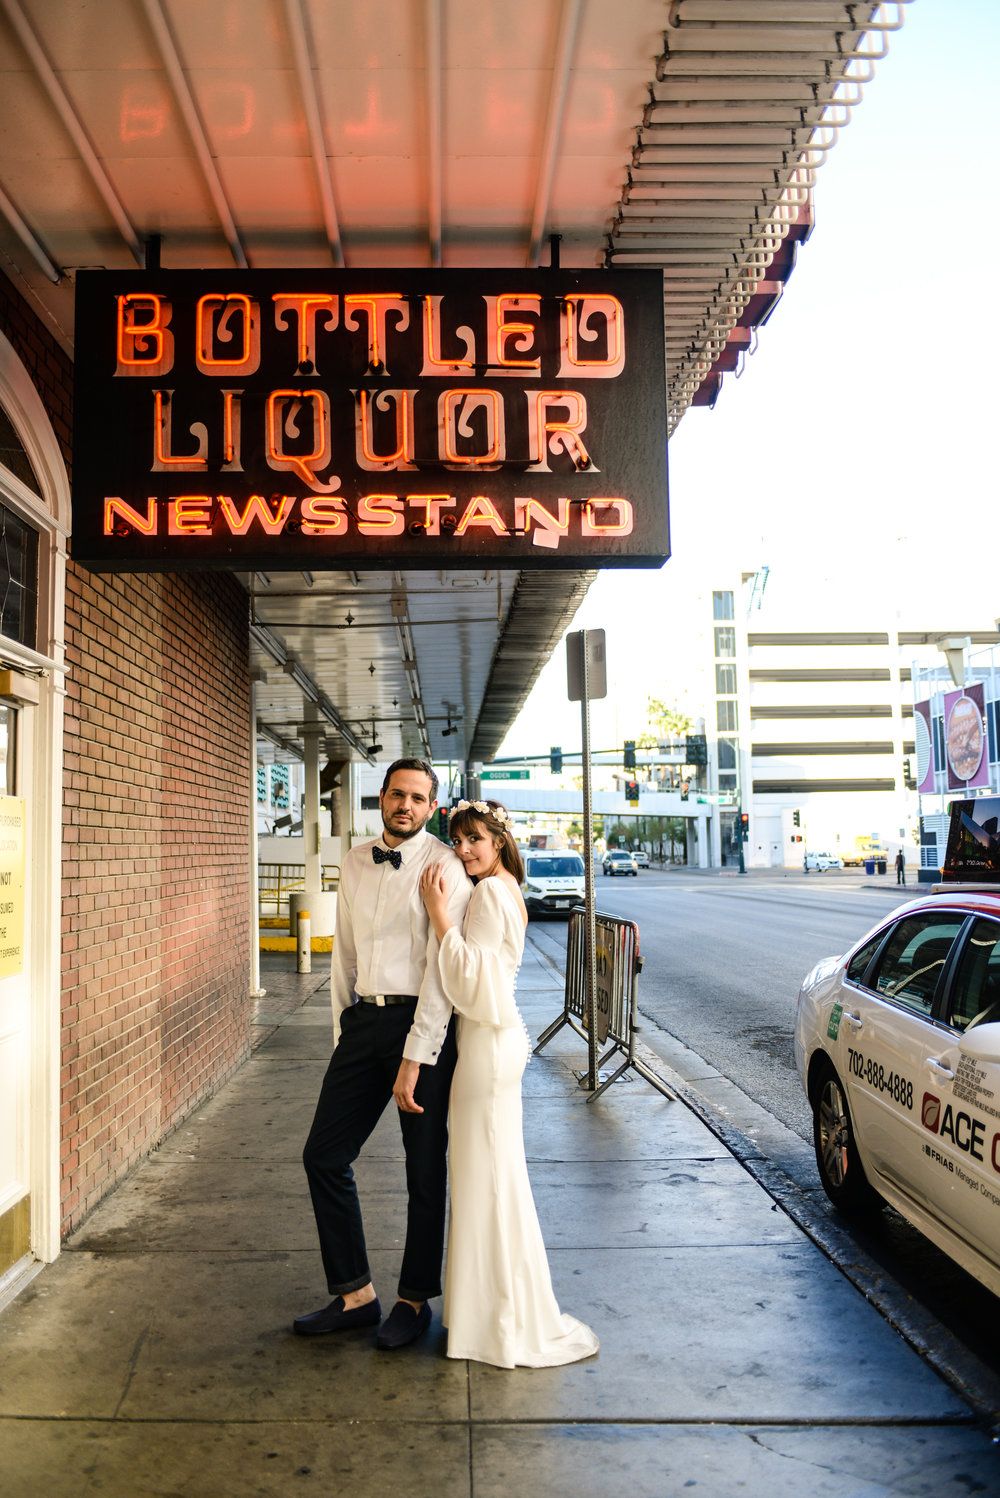 las vegas, las vegas lifestyle, las vegas elopement, elopement, las vegas downtown, dtlv, lifestyle wedding, lifestyle photographer, las vegas photographer, ashley marie myers,